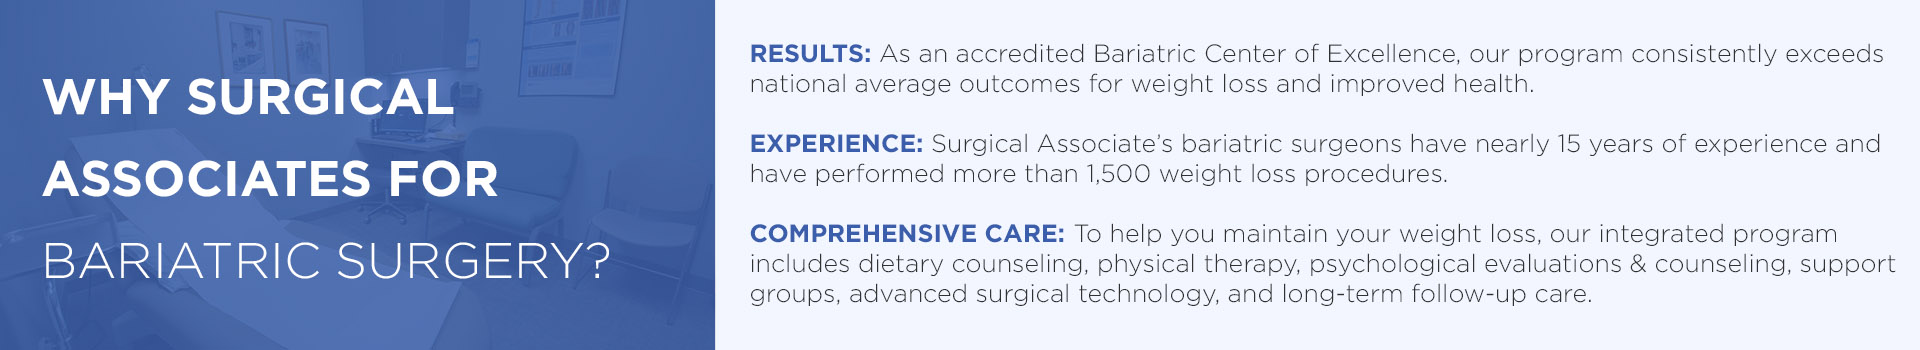 bariatric surgery support websites